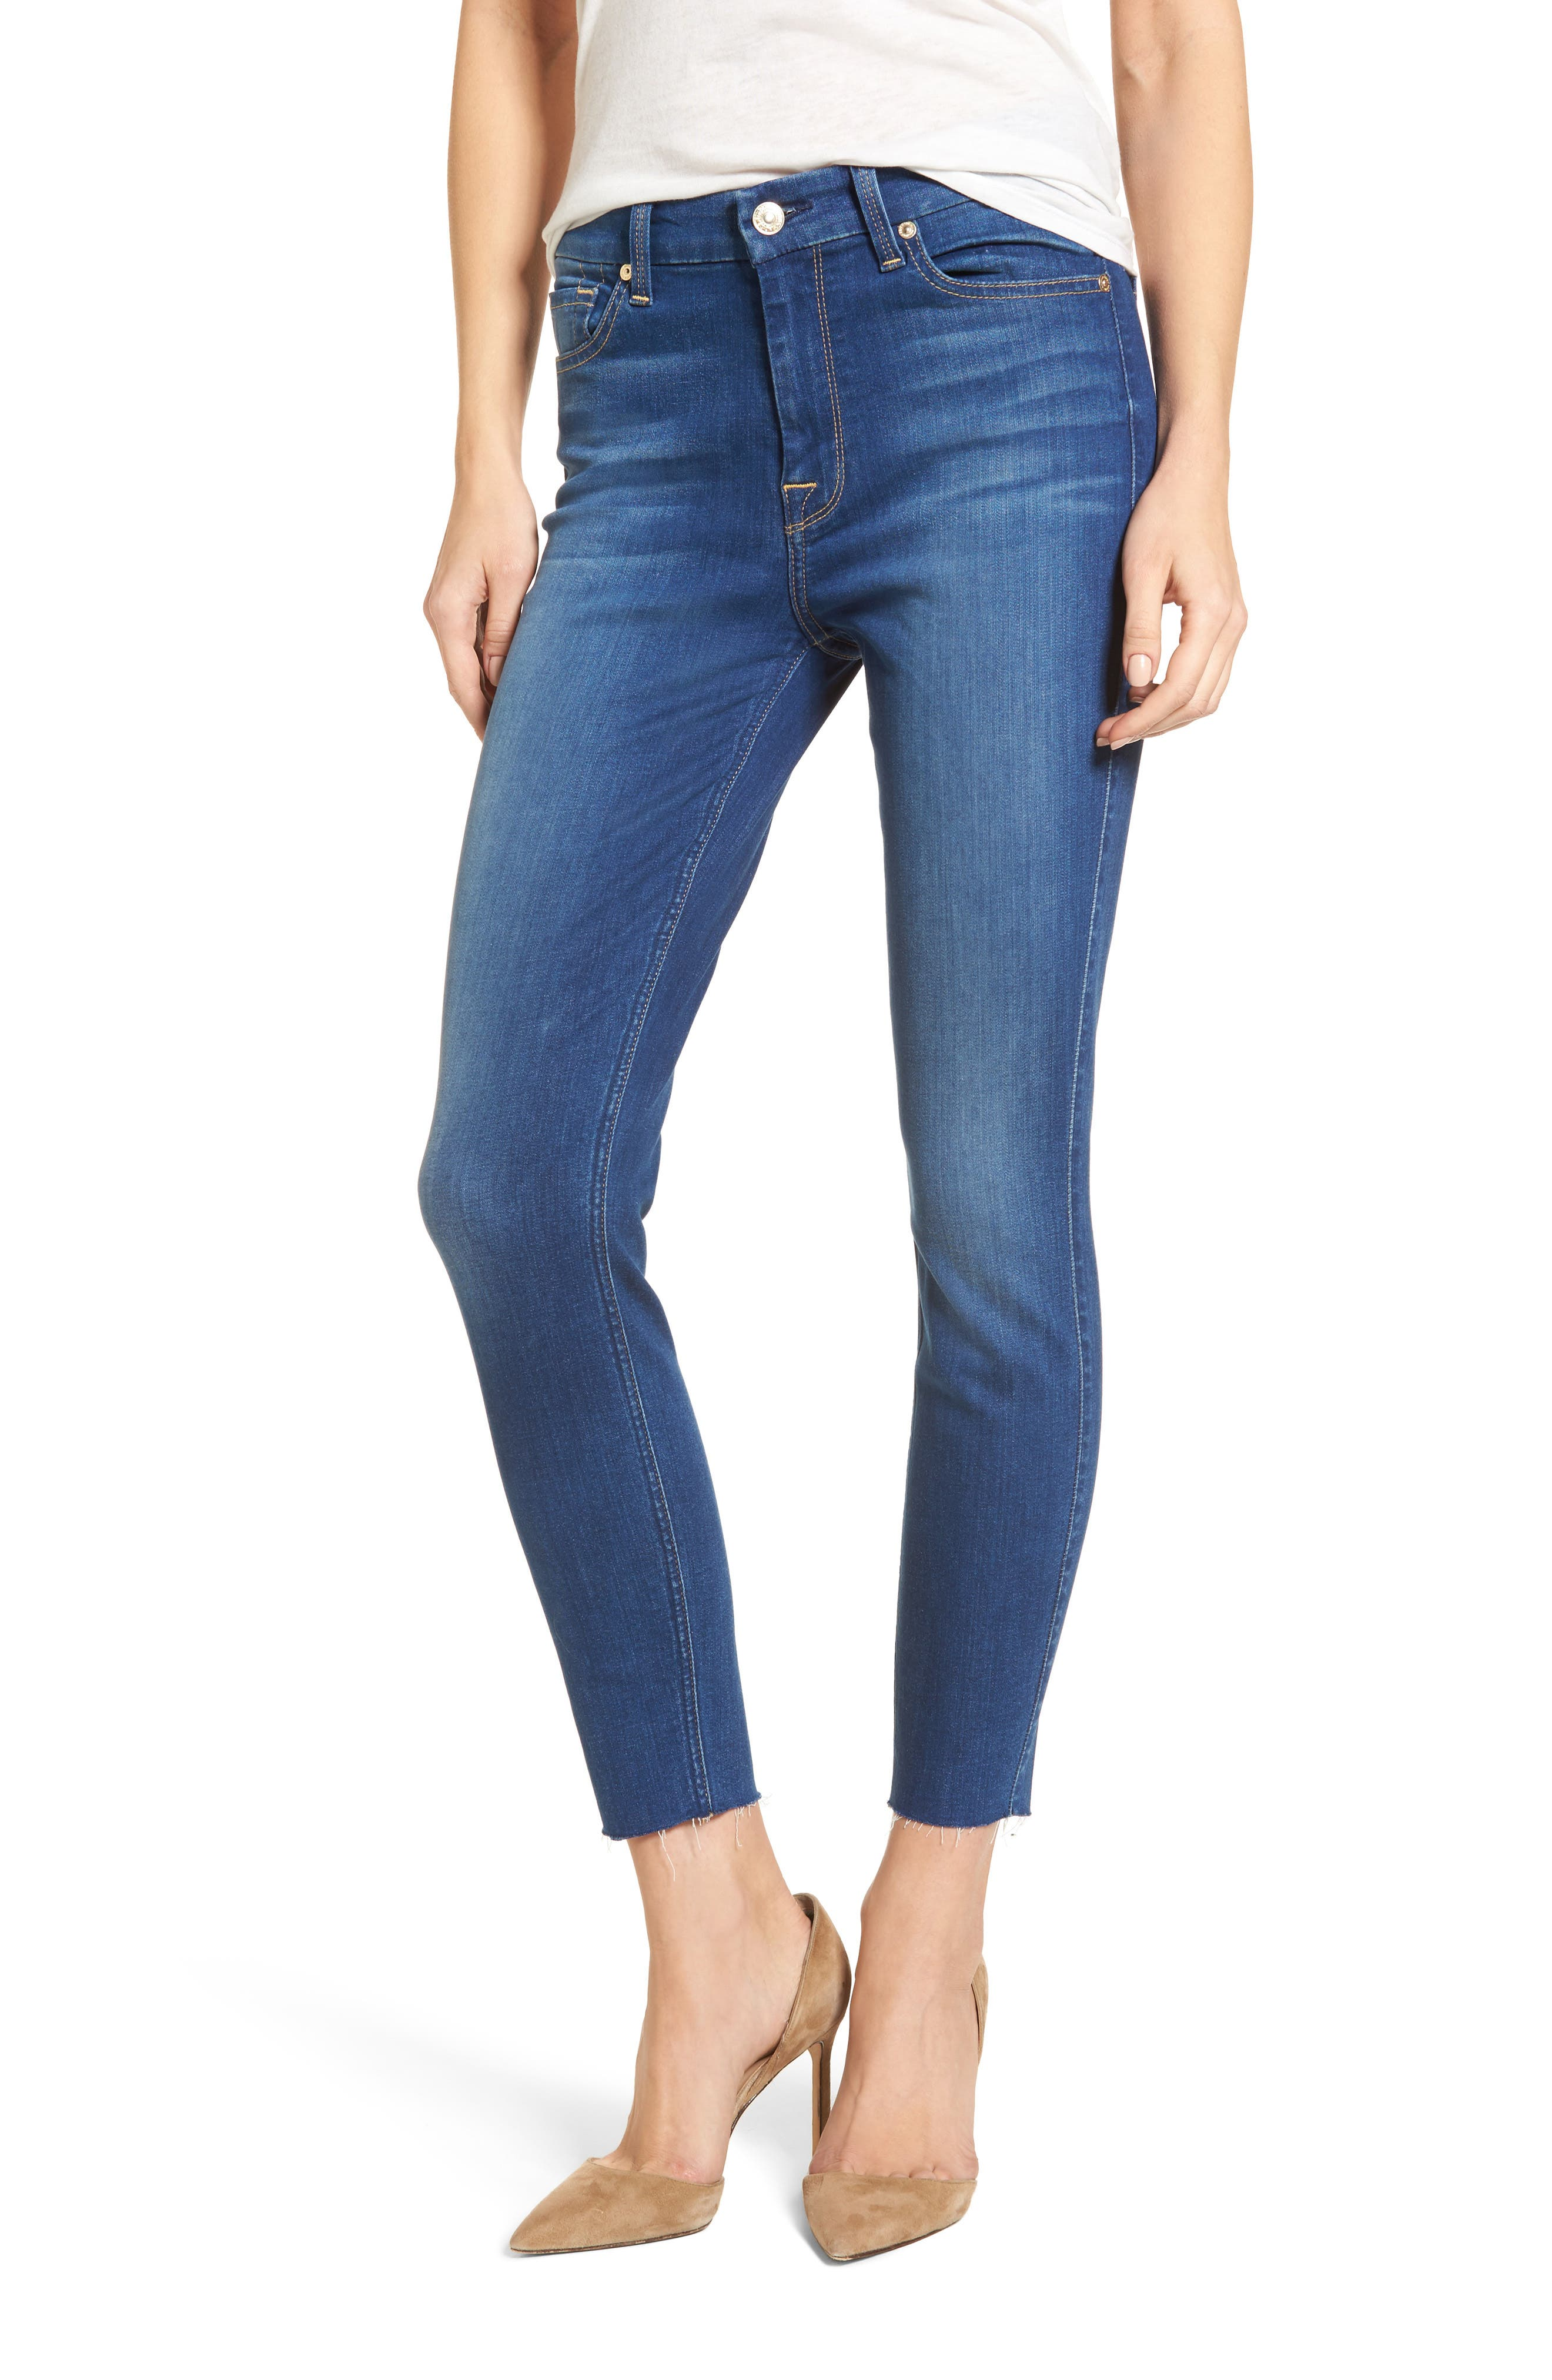 Alternate Image 1 Selected - 7 For All Mankind® High Waist Ankle Skinny Jeans (Manhattan)